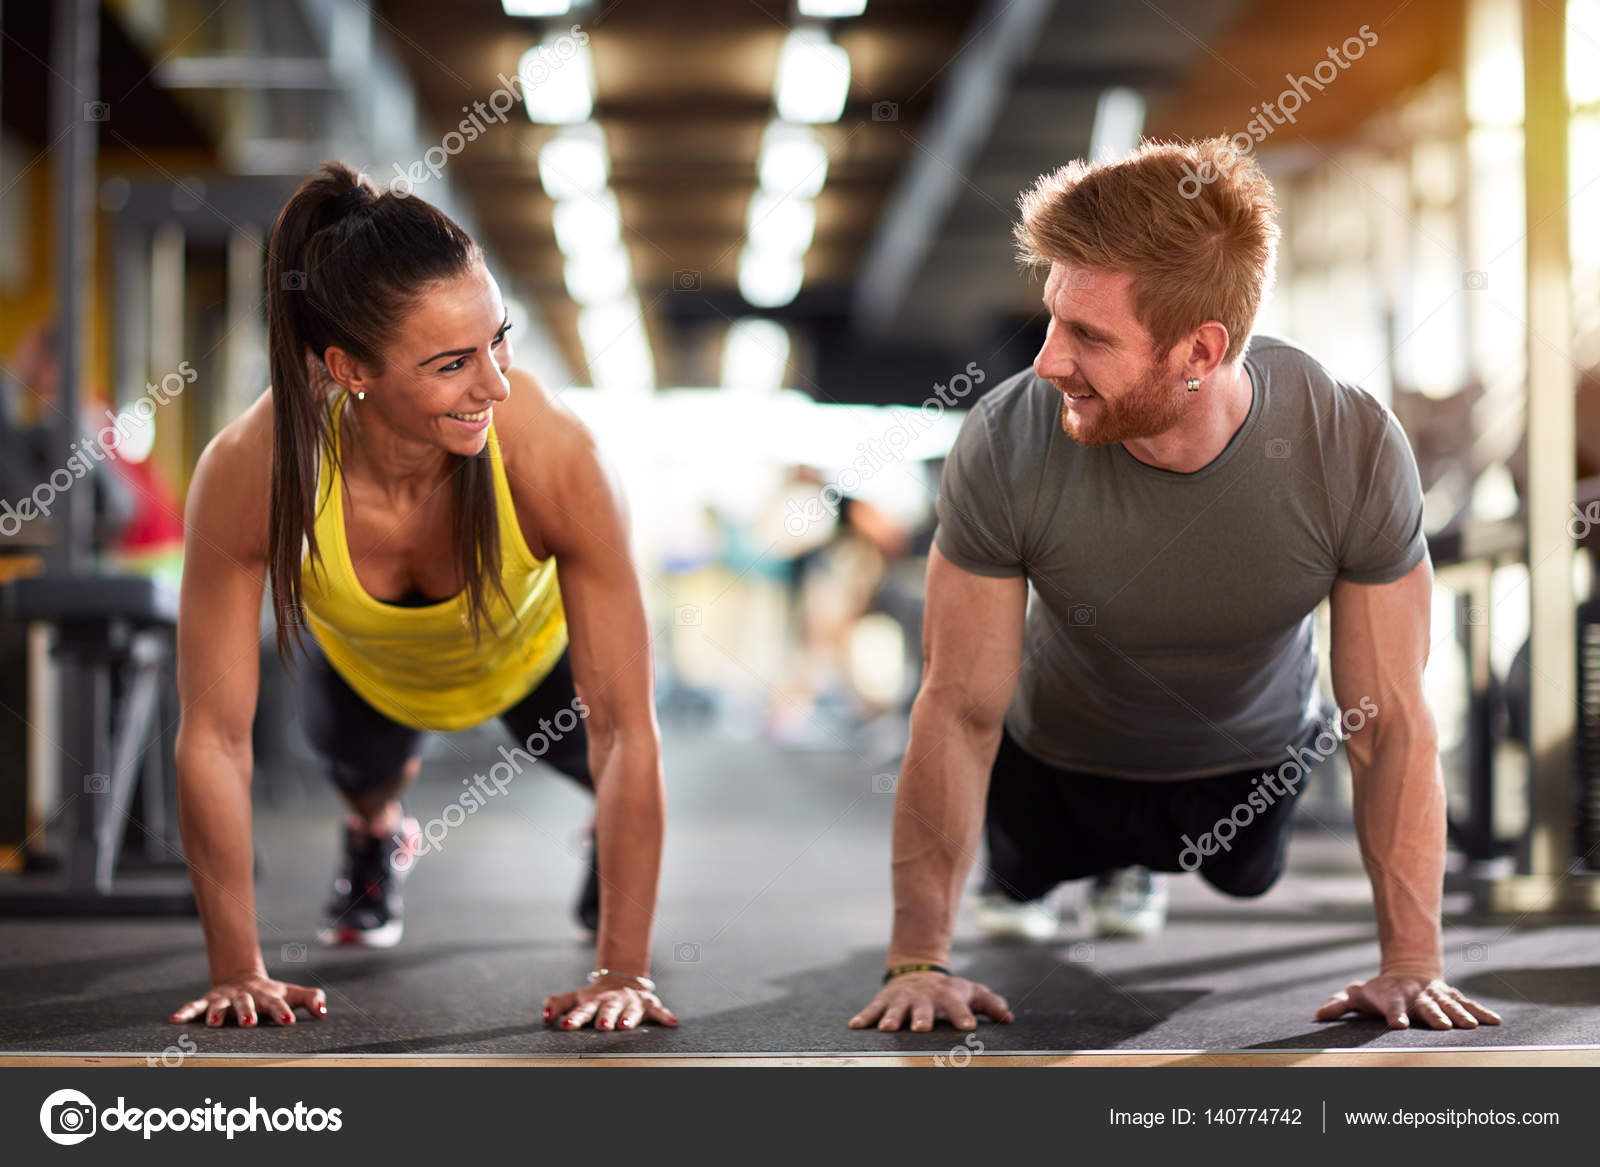 depositphotos_140774742-stock-photo-couple-fitness-training.jpg